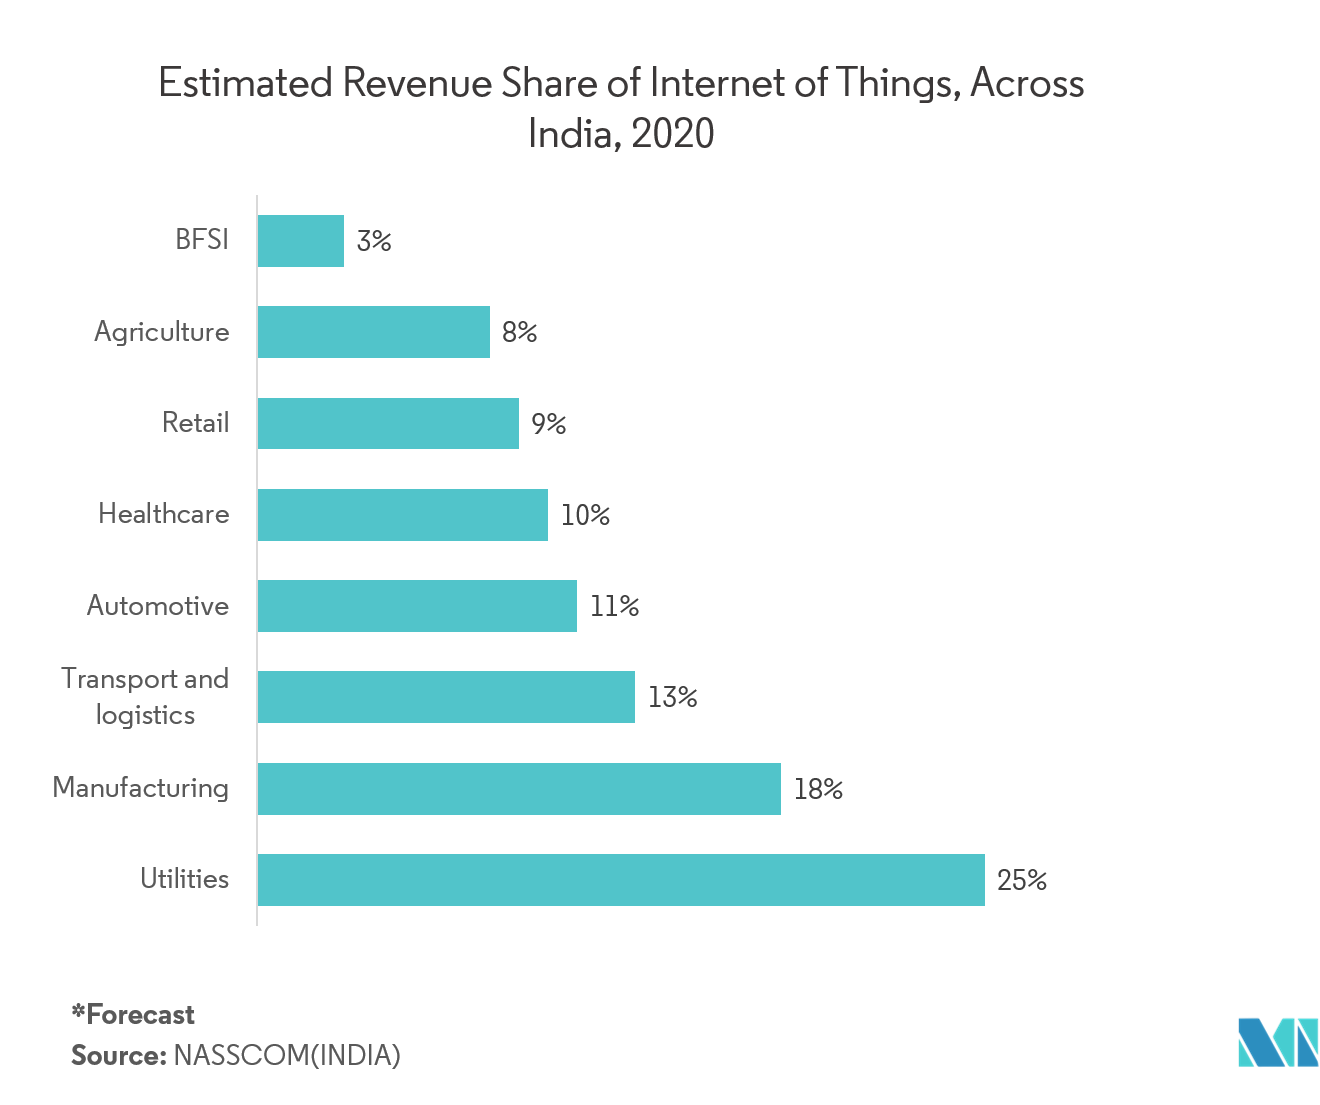 IoT Professional Services Market Key Trends